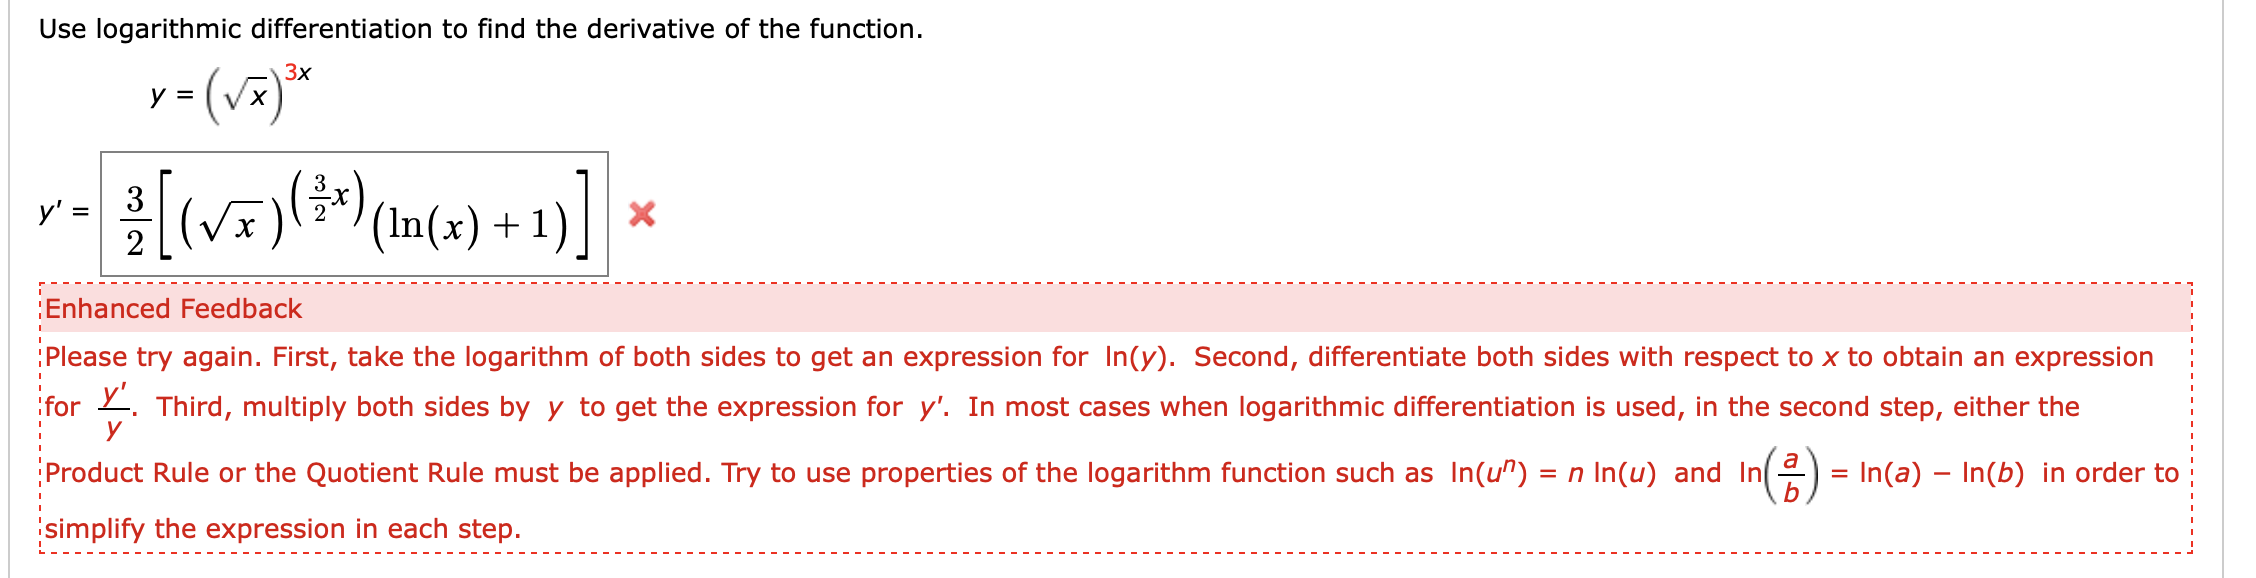 """Use logarithmic differentiation to find the derivative of the function y (v Зx Vx 3 (V) у' - 2 X '(In(x) 1 Enhanced Feedback Please try again. First, take the logarithm of both sides to get an expression for In(y). Second, differentiate both sides with respect to x to obtain an expression for Third, multiply both sides byy to get the expression for y'. In most cases when logarithmic differentiation is used, in the second step, either the у Product Rule or the Quotient Rule must be applied. Try to use properties of the logarithm function such as In(u"""") n In(u) and In = In(a) In(b) in order to simplify the expression in each step."""